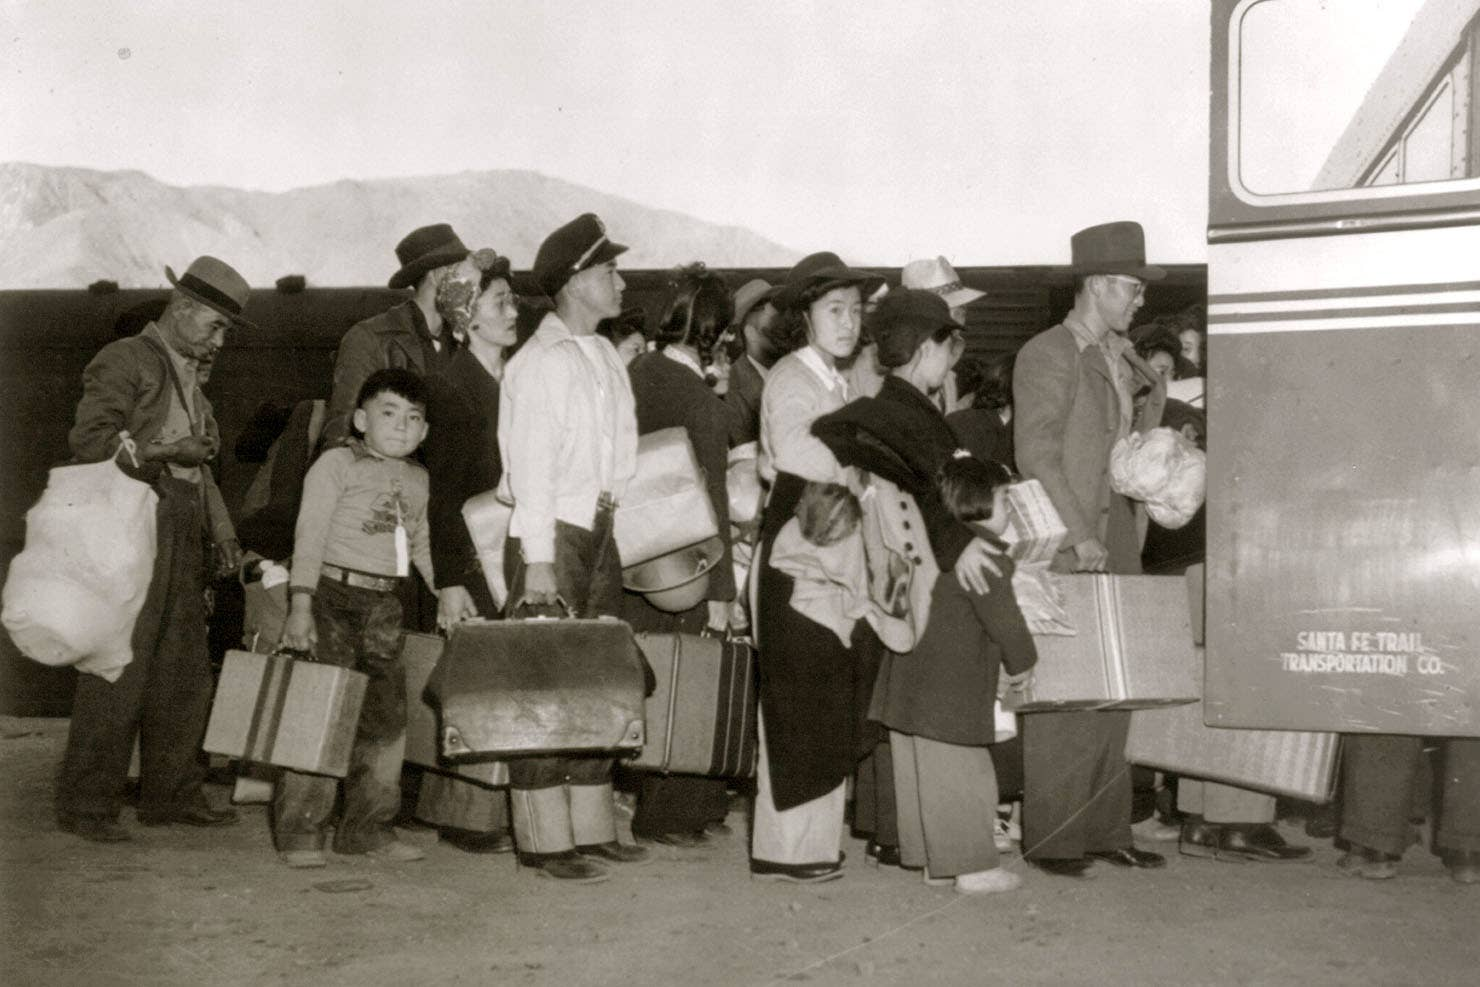 Japanese Americans transfer from train to bus at Lone Pine, California, bound for an internment camp at Manzanar, circa1942.